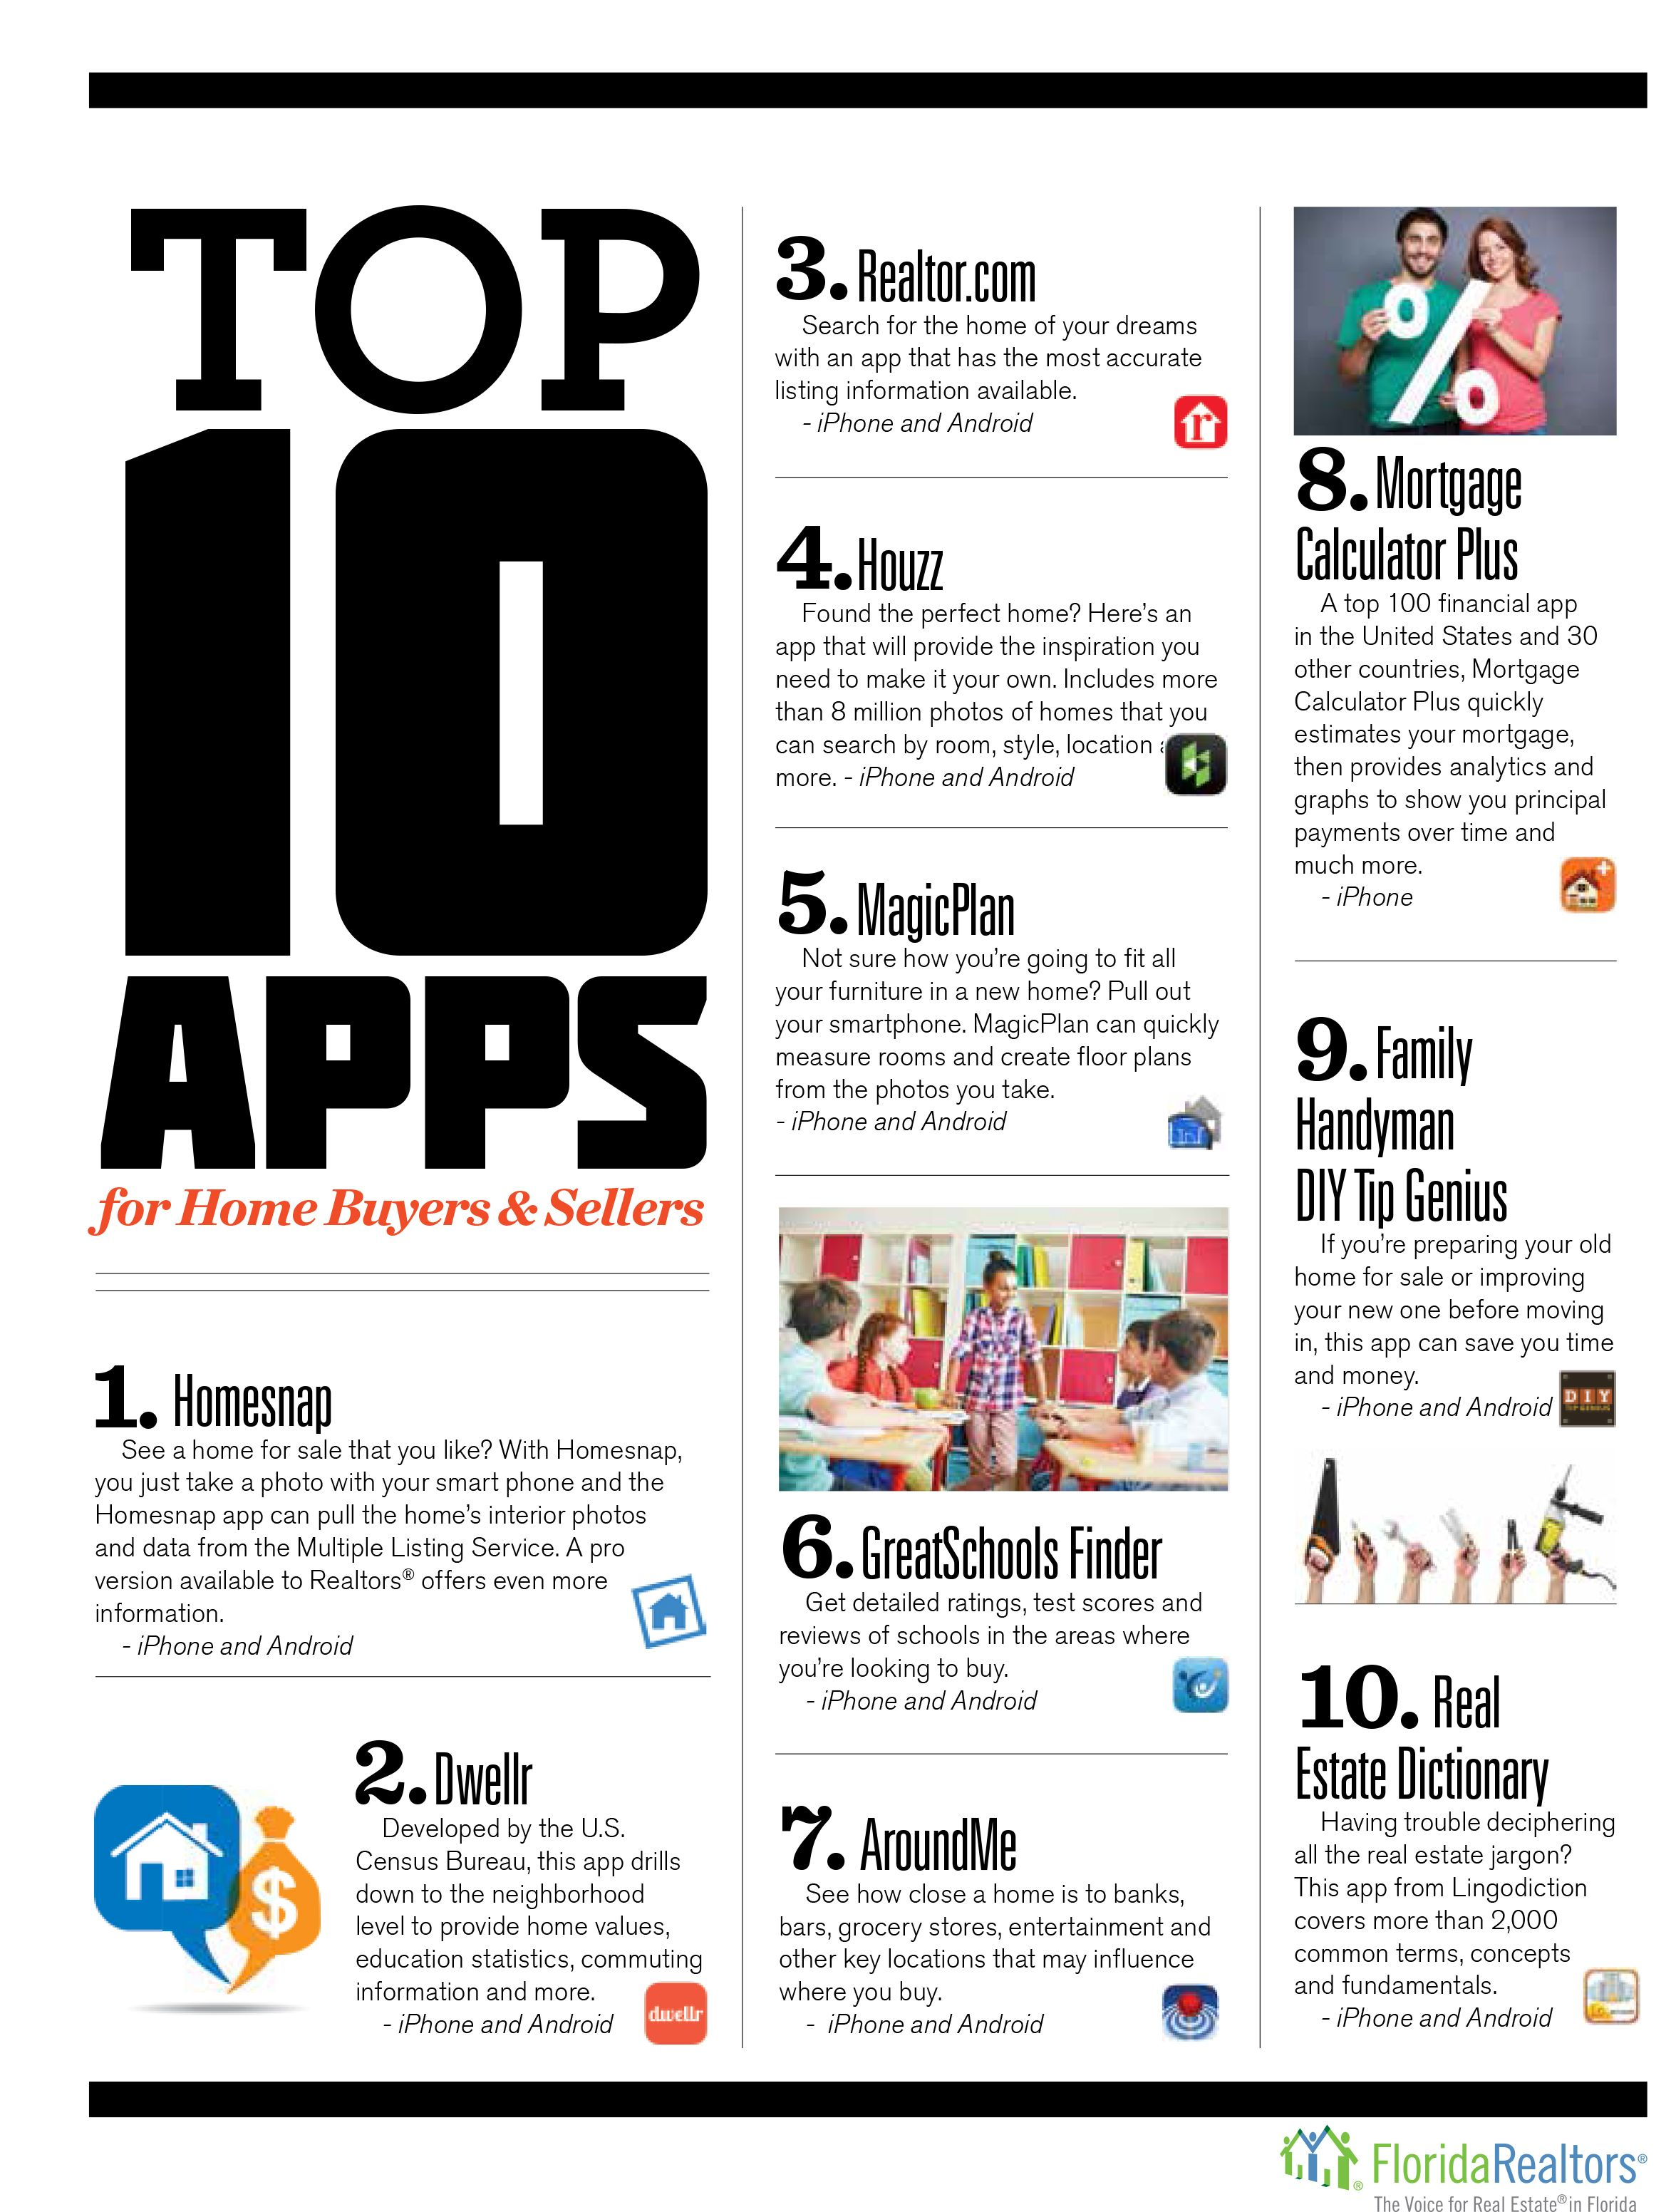 Top 10 Apps for Home Buyers and Sellers Follow us to stay